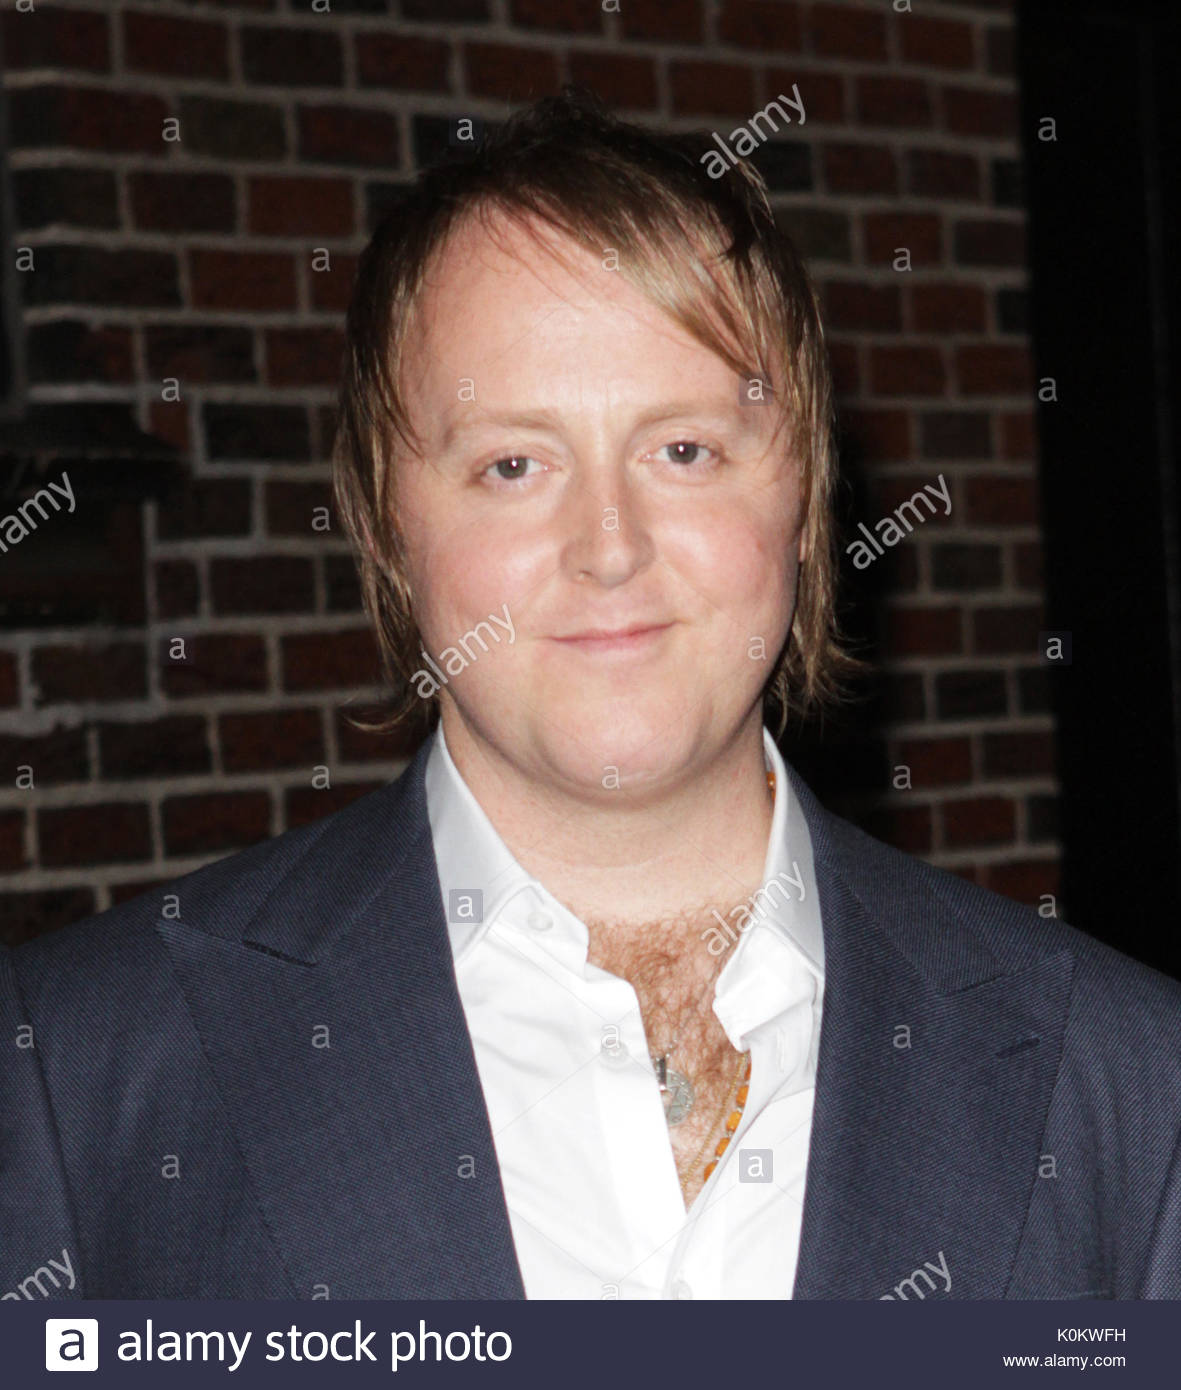 James McCartney Son Of Sir Paul Visits The Late Show With David Letterman To Perform His Band NYC